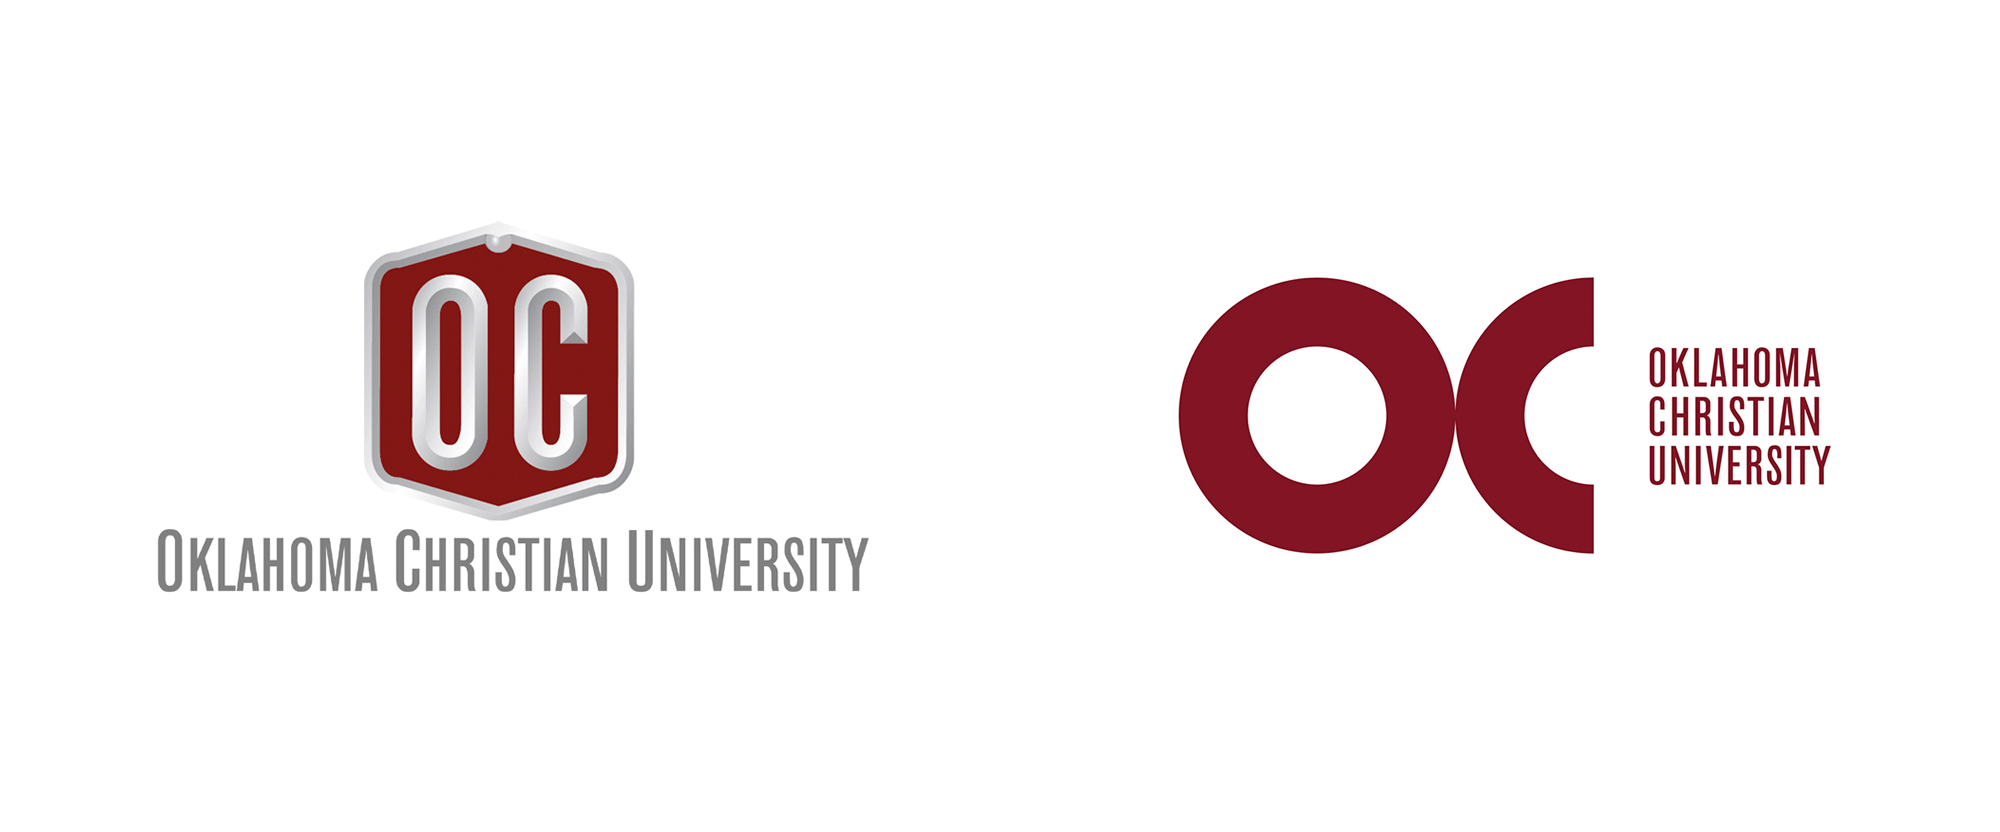 New Logo and Identity for Oklahoma Christian University by Switch